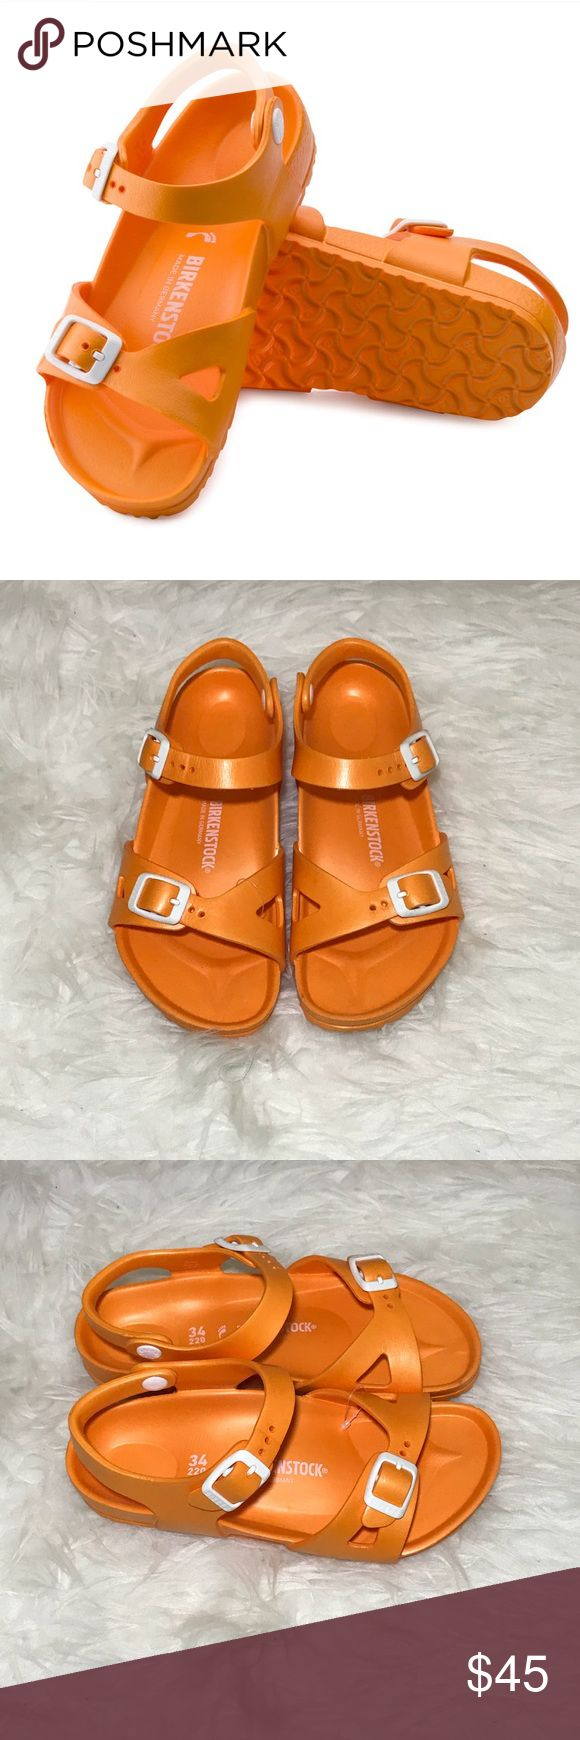 """NWOT Birkenstock Kids RIO Essential Sandals NWOT Birkenstock Kids RIO Essential Water Friendly Sandals. Size 34 (eu) or a Size 2/3 (us big kids)  Color: Neon Orange Water Friendly Material: """"EVA (ethylene vinyl acetate) is a high-quality, very light, elastic material with very good cushioning. As a result, it smooths out slight irregularities in the floor and ensures that every step is softly cushioned."""" It's NEW but my daughter took off the tag, just tried them on.  Made in Germany and…"""